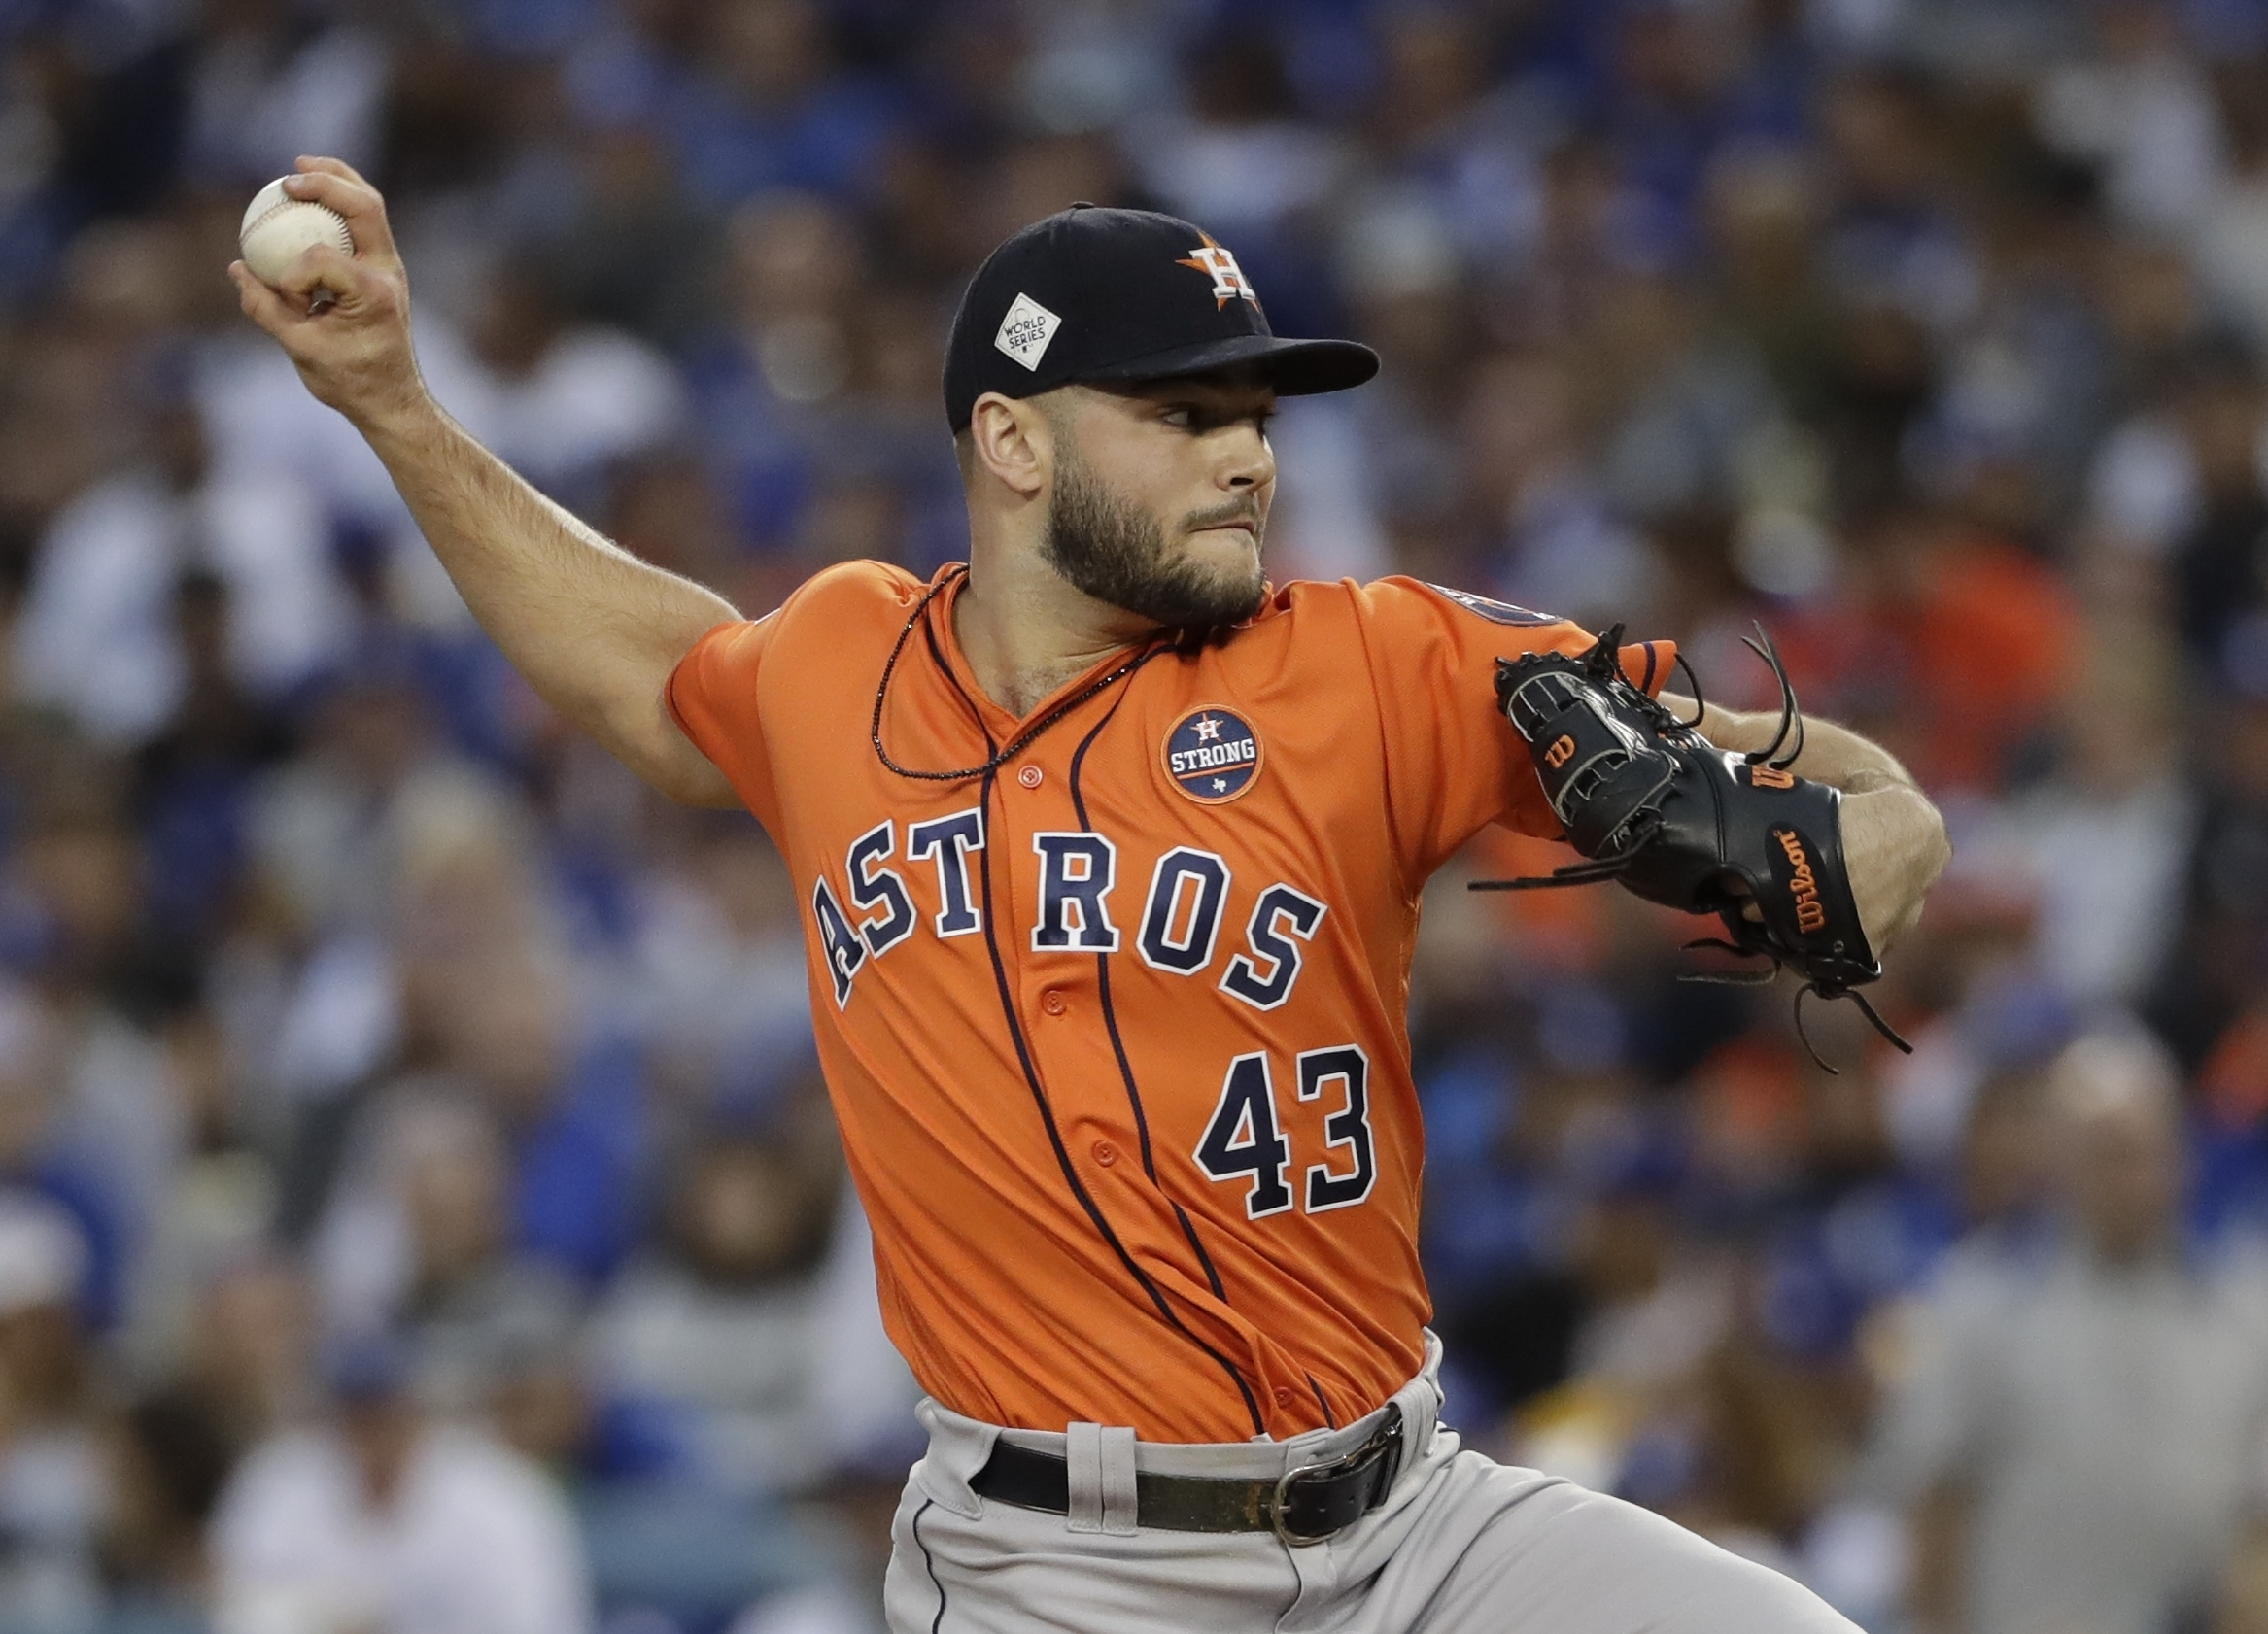 "<div class=""meta image-caption""><div class=""origin-logo origin-image ap""><span>AP</span></div><span class=""caption-text"">Houston Astros starting pitcher Lance McCullers Jr. throws during the first inning of Game 7. (AP Photo/Matt Slocum) (AP)</span></div>"